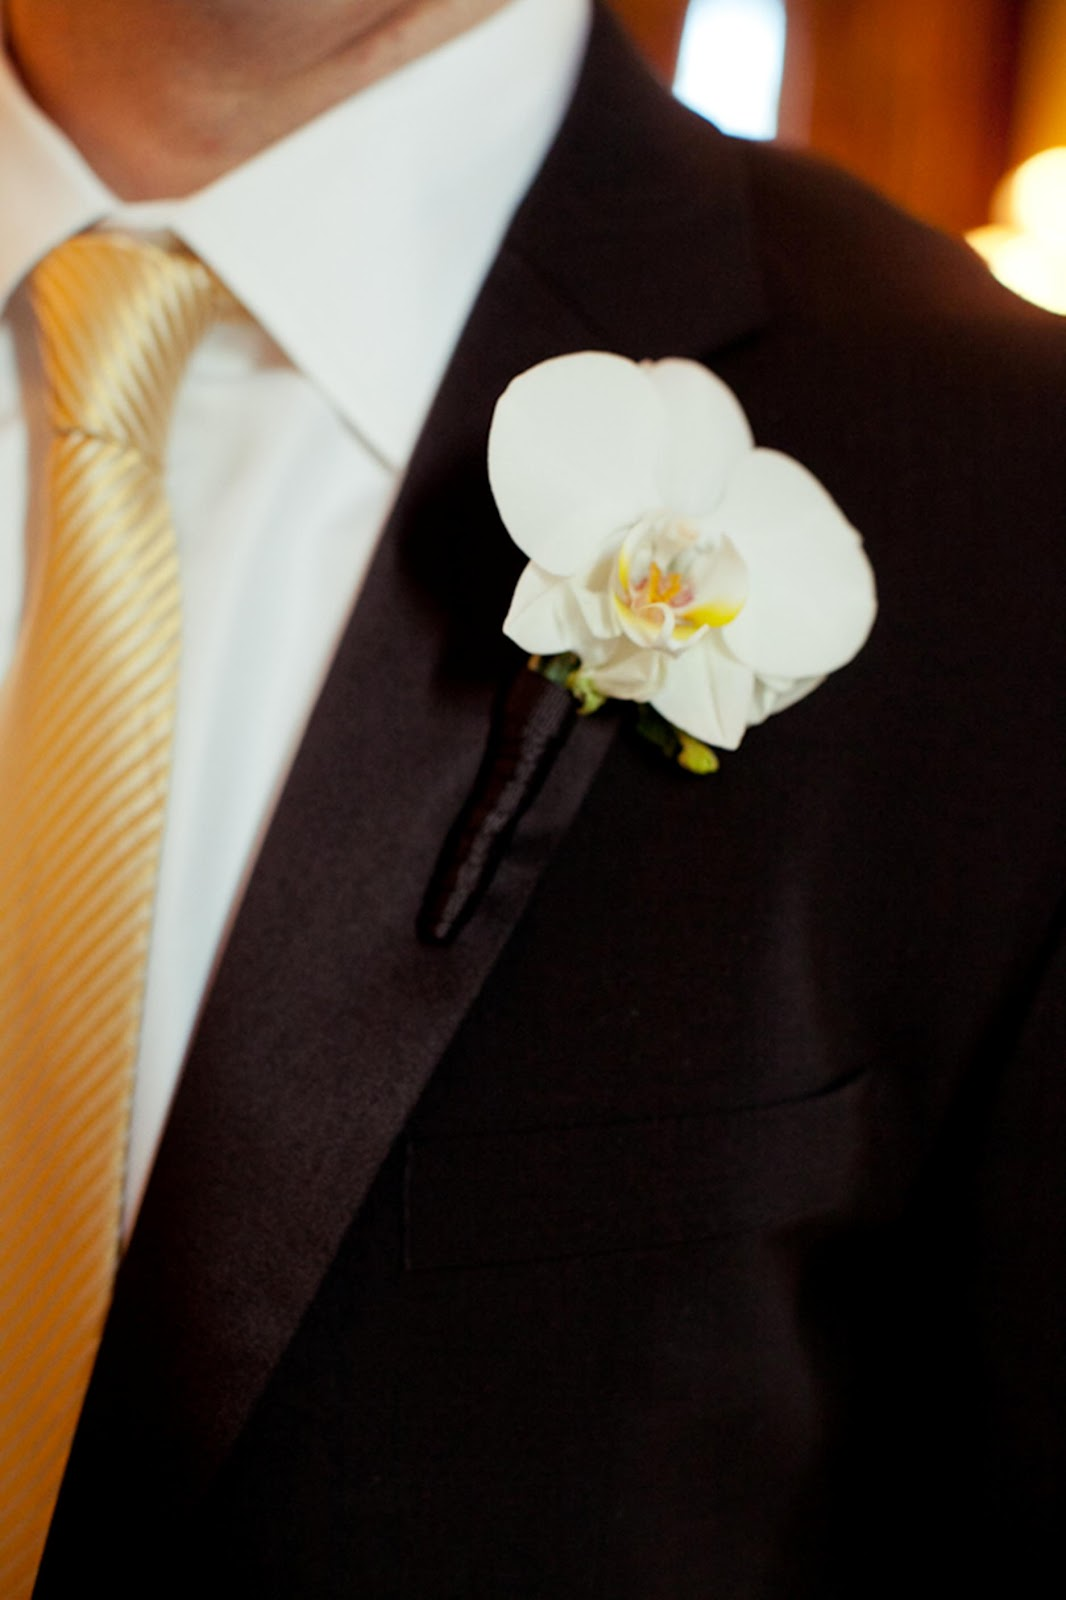 Orchid Boutonniere - Boutonnieres - Wedding Flowers - Groom - Usher - Best Man - Groomsmen - Ushers - Groom's Boutonniere